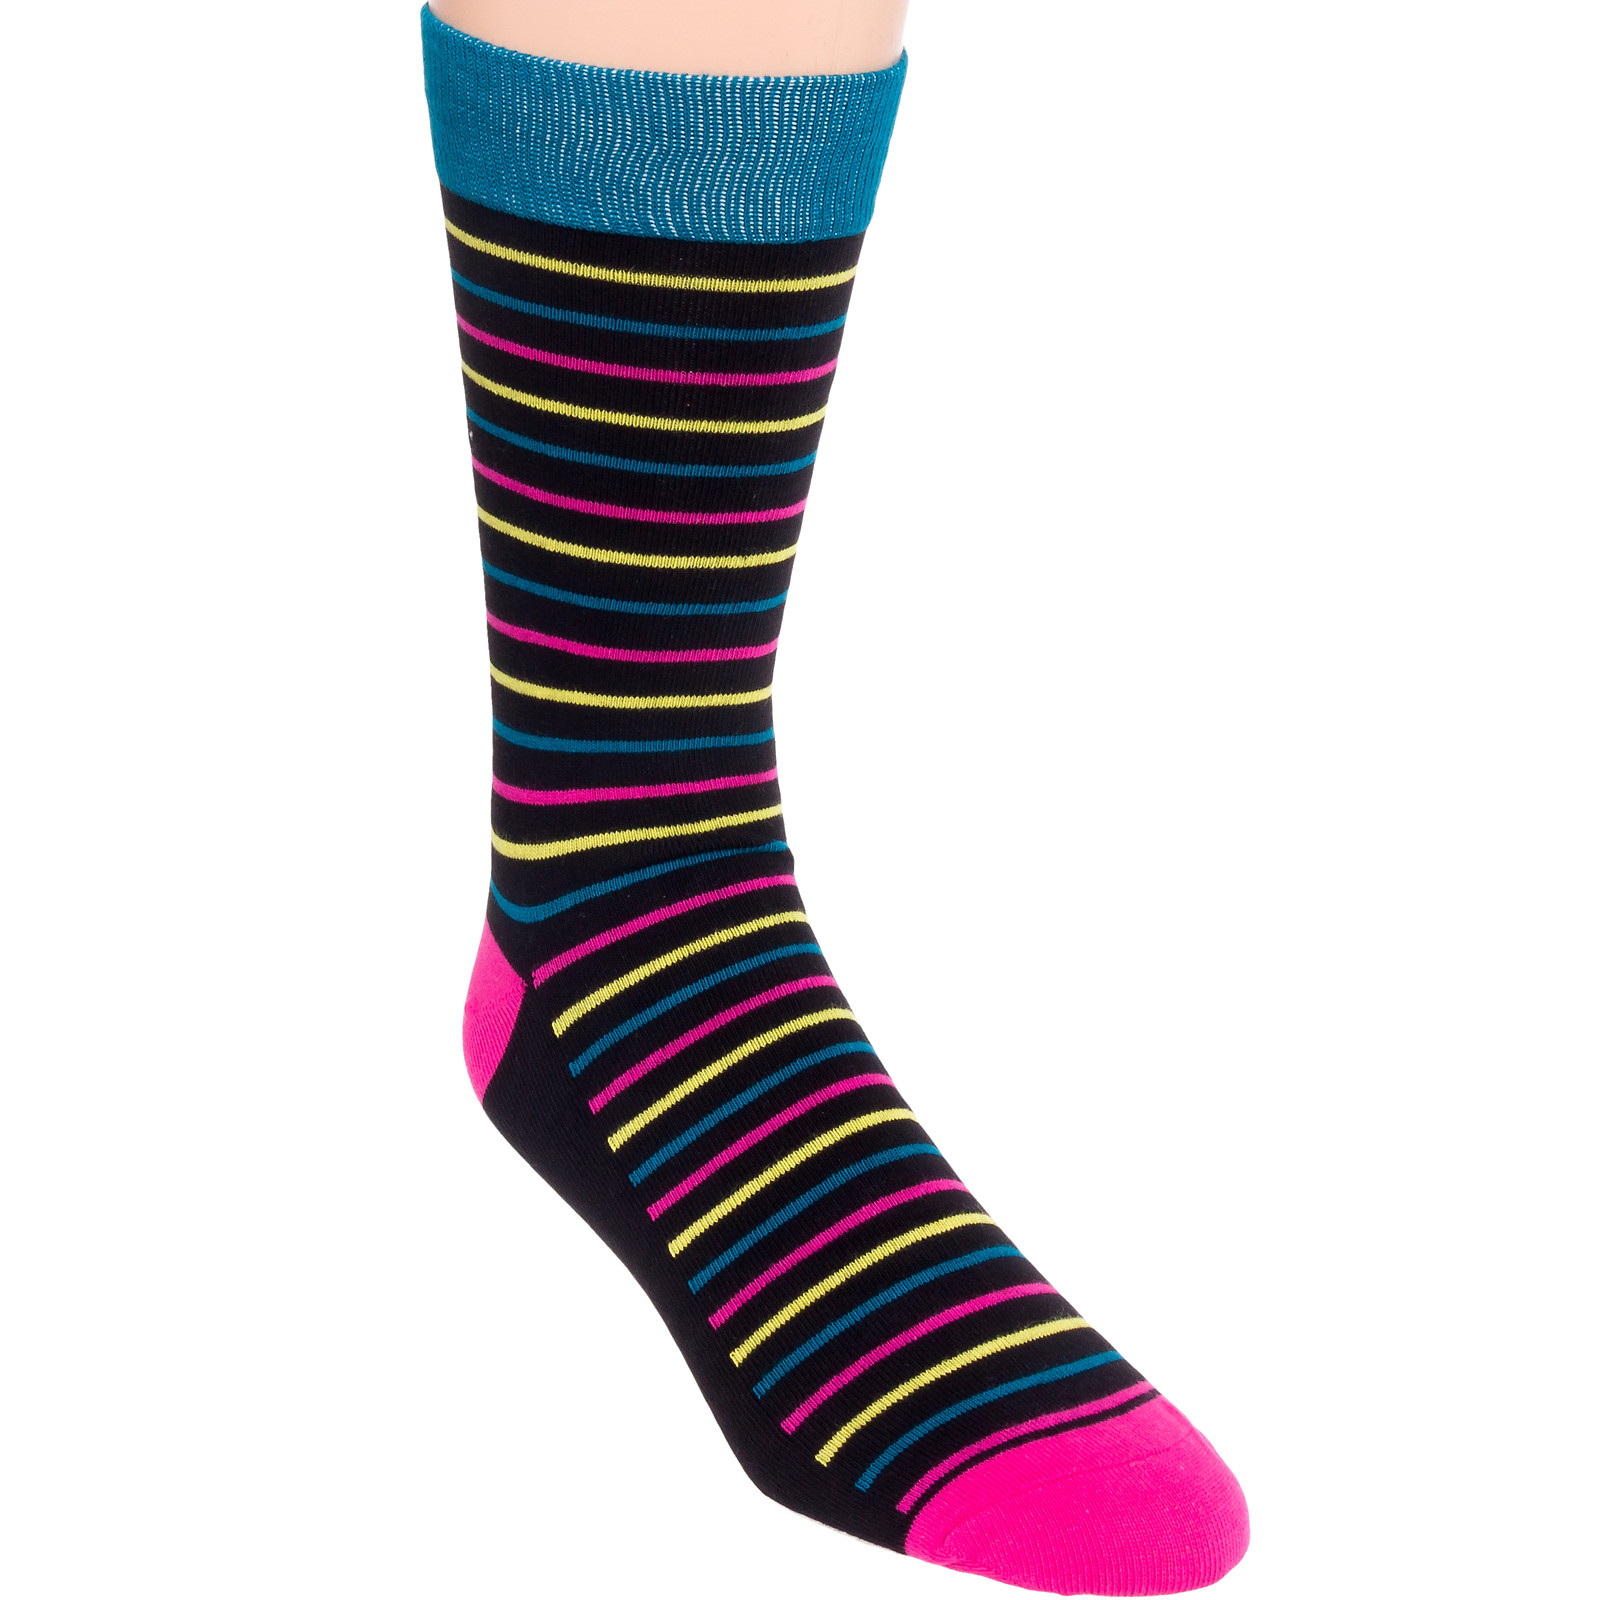 Patterned socks Luxury Jyinstyle Mens Cotton Colorful Patterned Fashion Crew Of Superb 48 Images Patterned socks